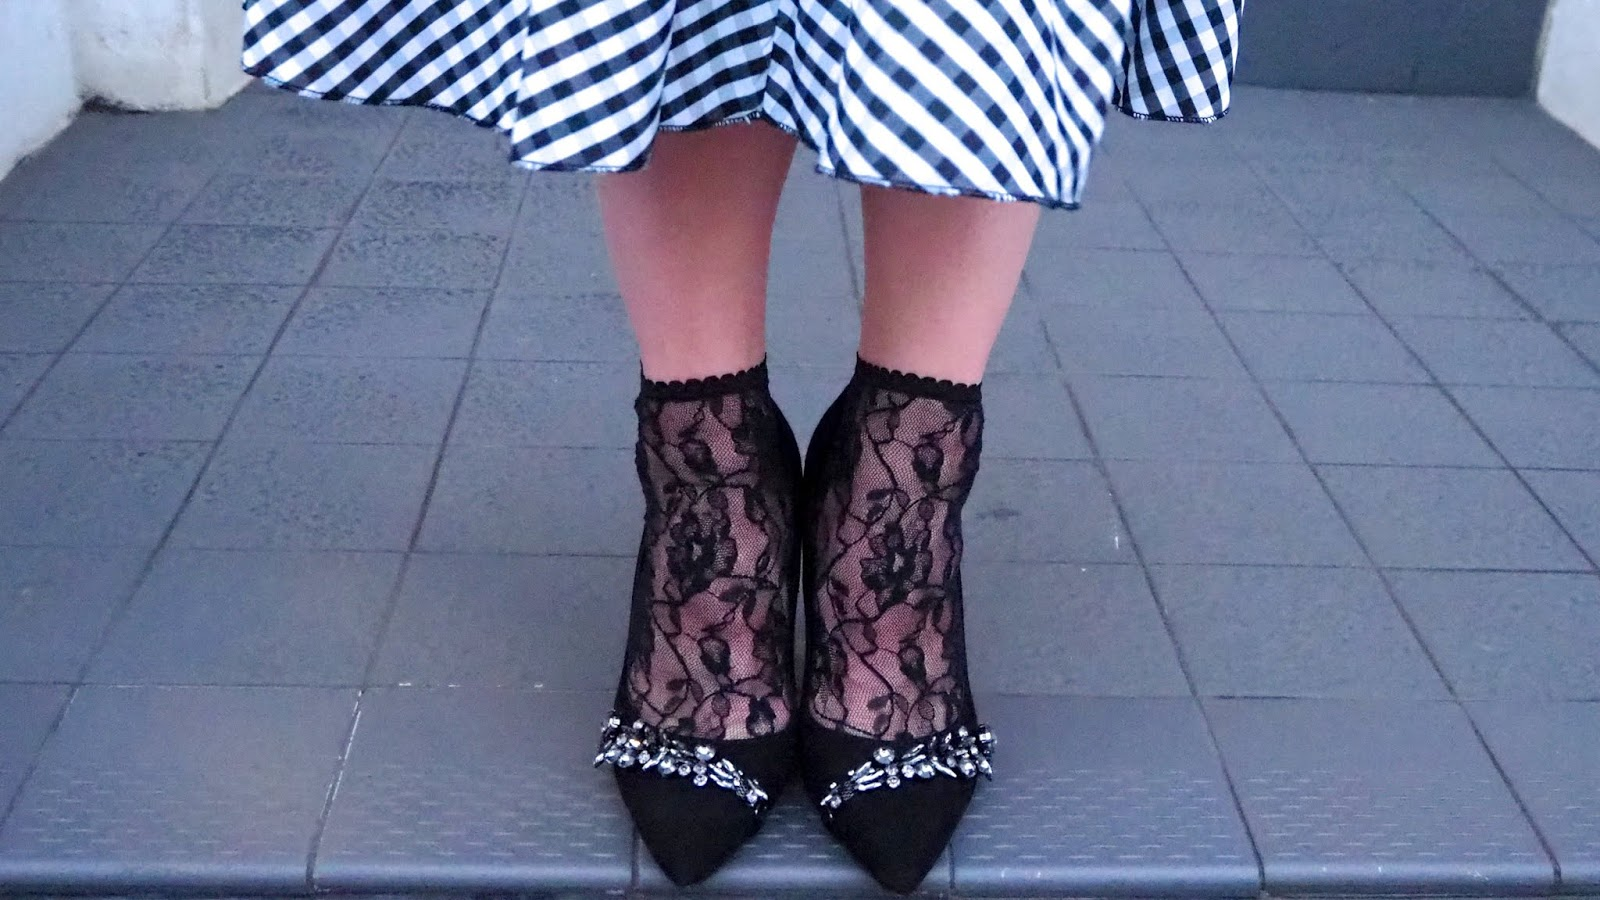 gingham tiered skirt with lace socks and black heels with jewels on them